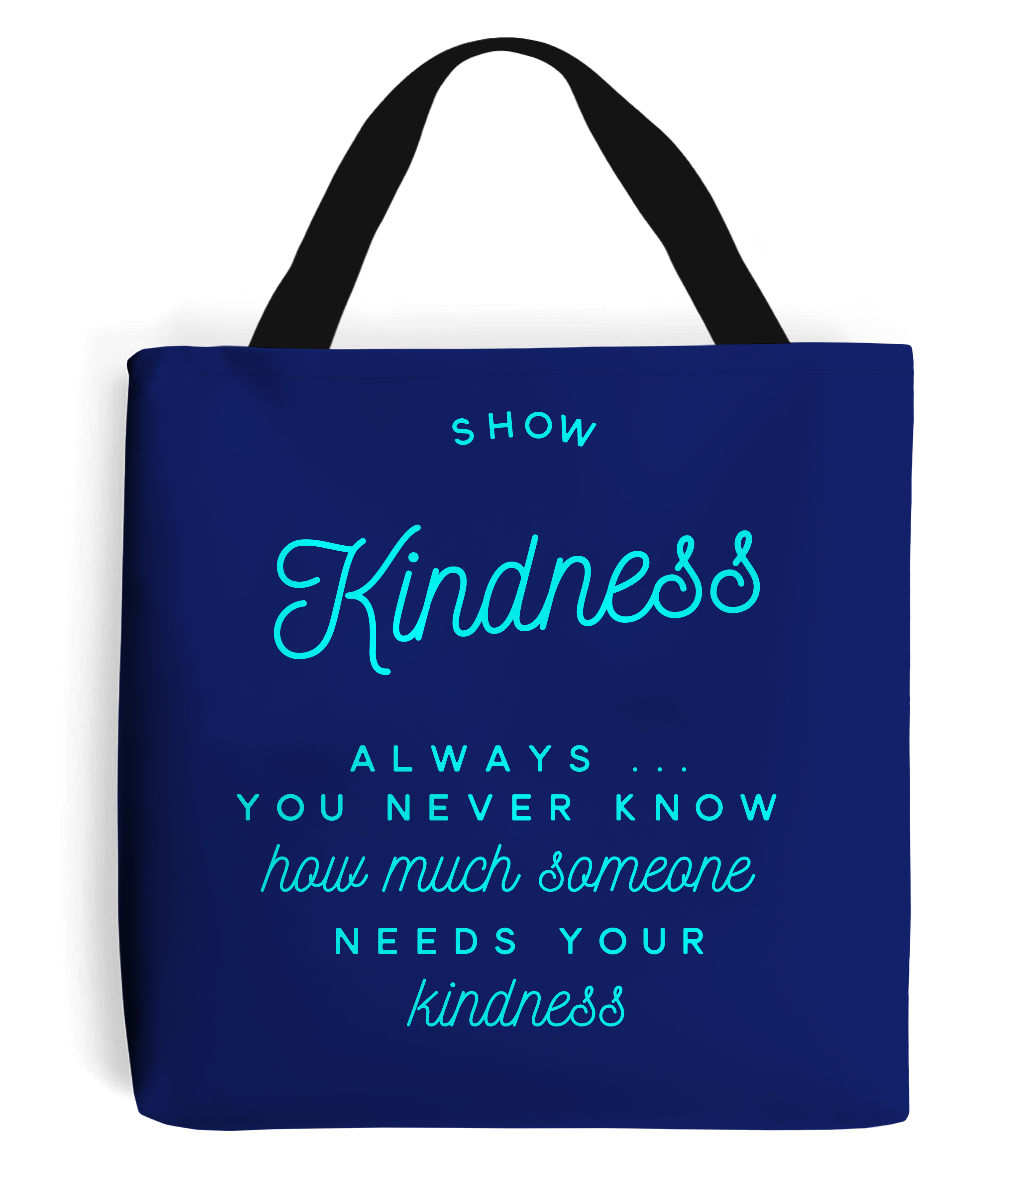 Kindness Quote - Tote Bag with Aqua/Turquoise Writing